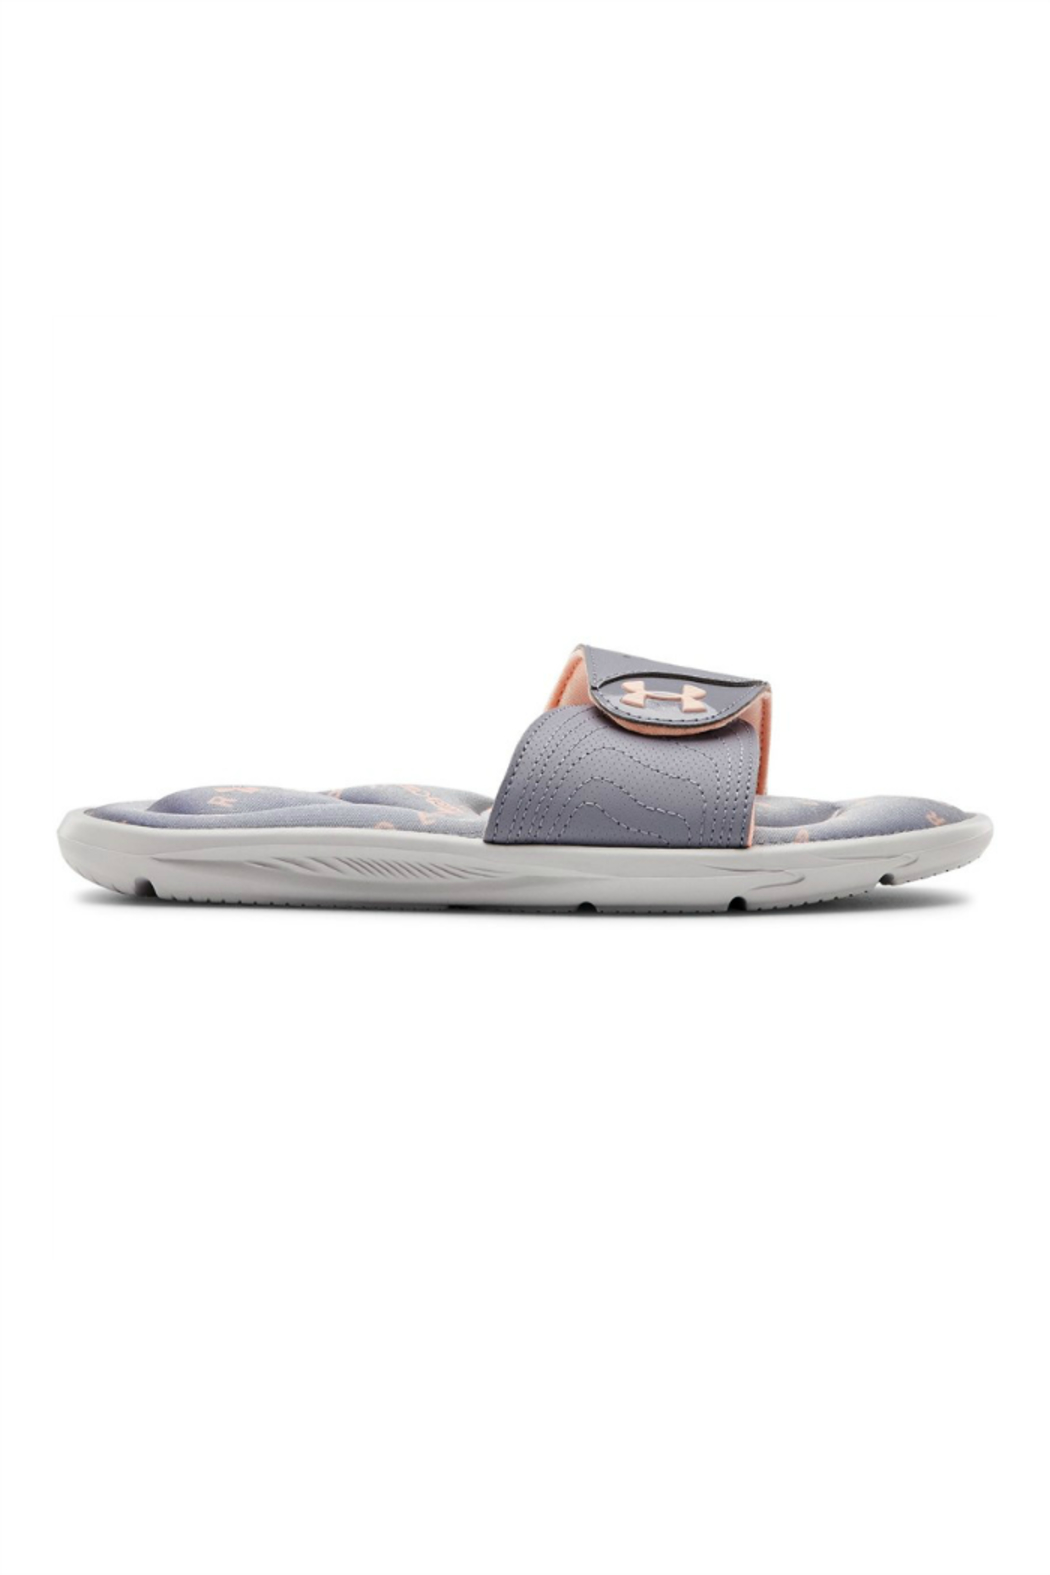 Under Armour Girls Ignite Swerve Slide in Halo Gray - Main Image